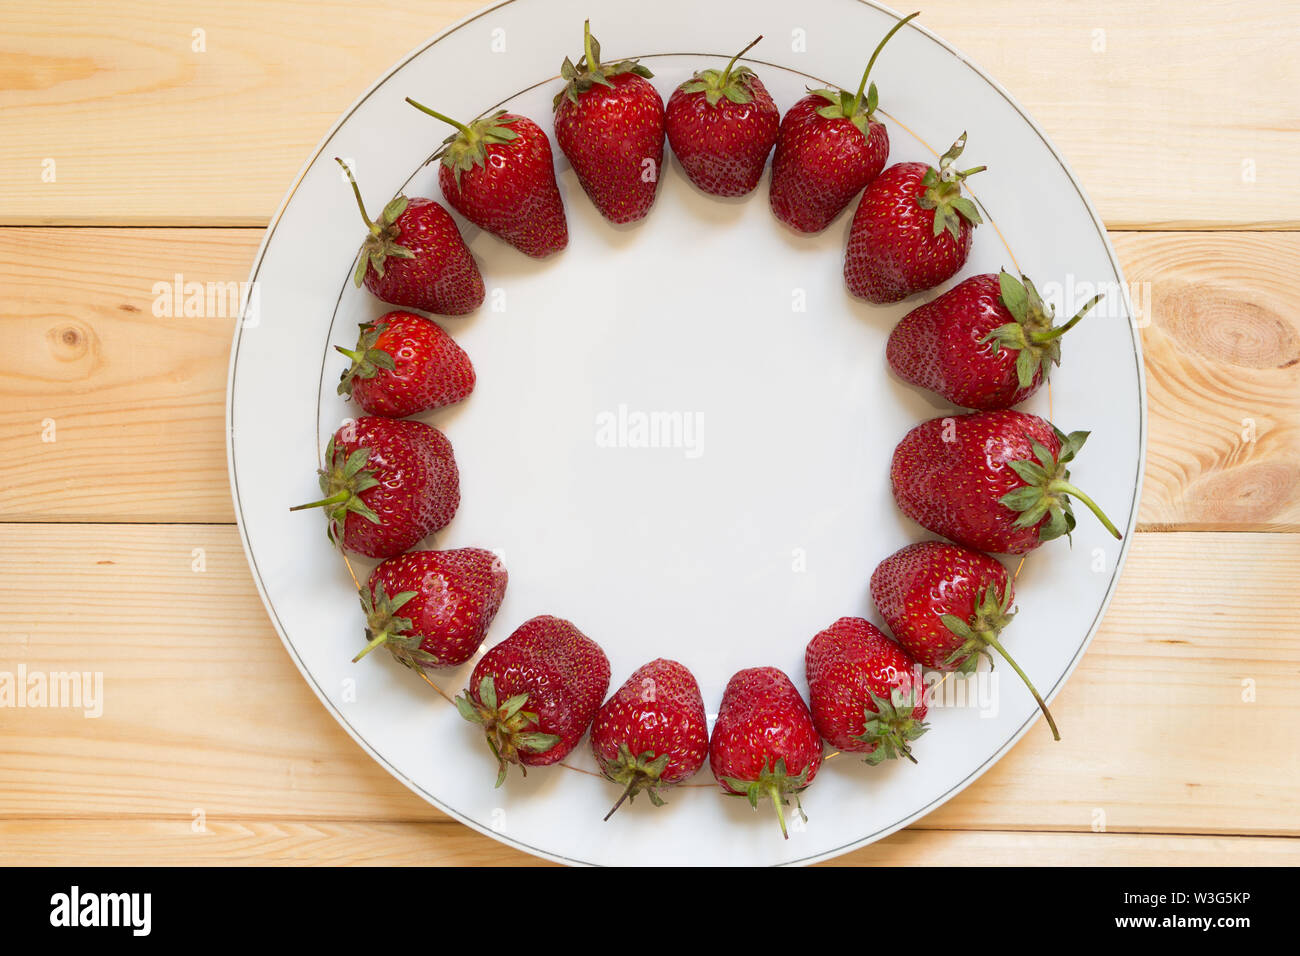 Red ripened strawberries laid out in circle shape on white plate on light wooden table. Copy space in center of frame. Place for text. Delicious natur Stock Photo